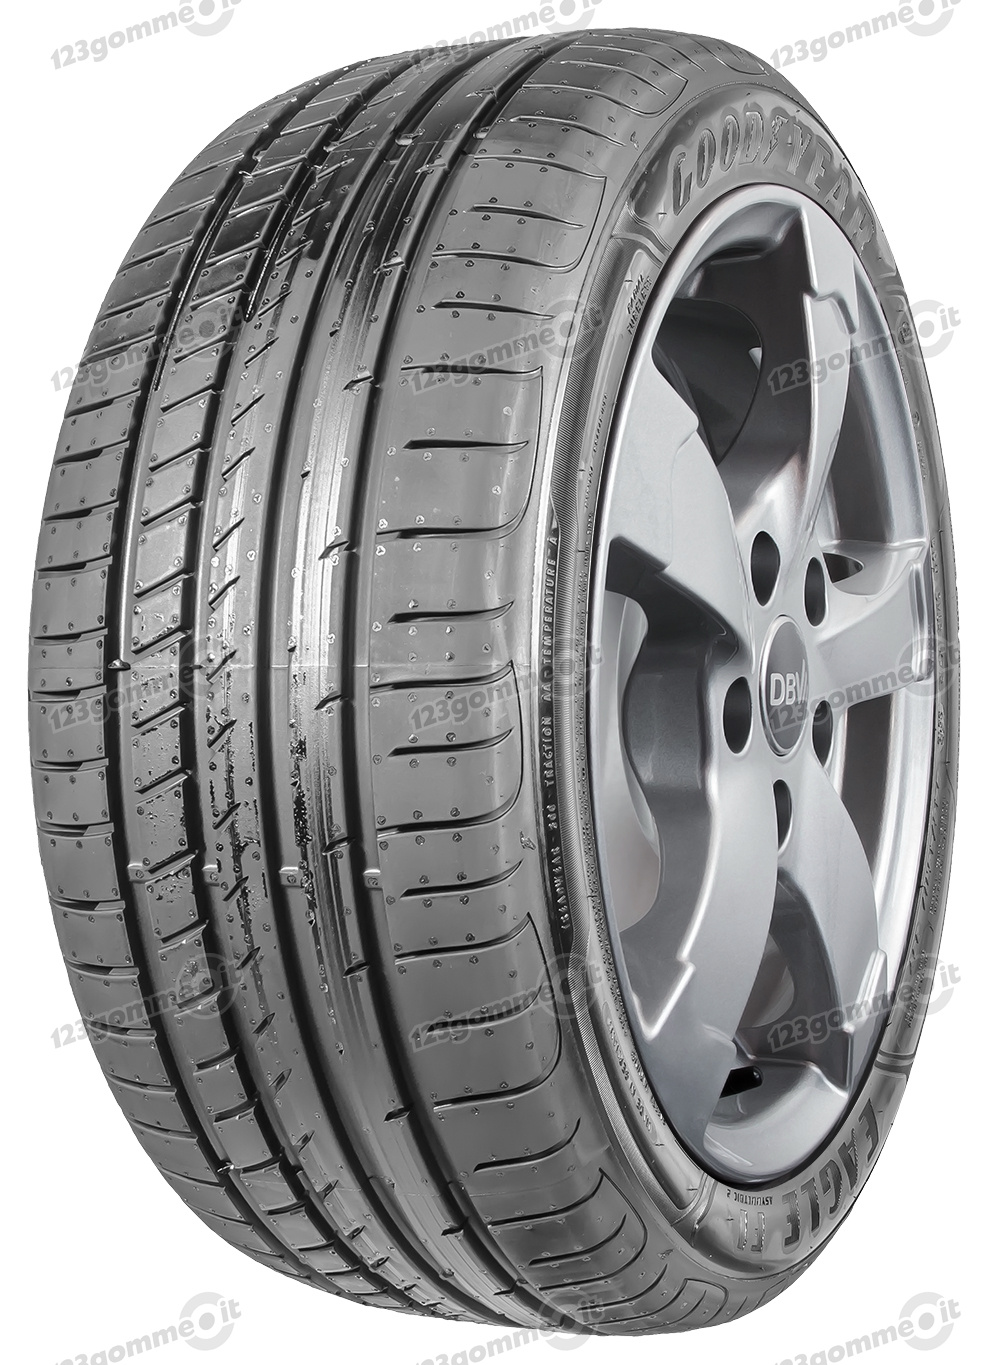 225/40 R18 88Y Eagle F1 Asymmetric 2 FP  Eagle F1 Asymmetric 2 FP